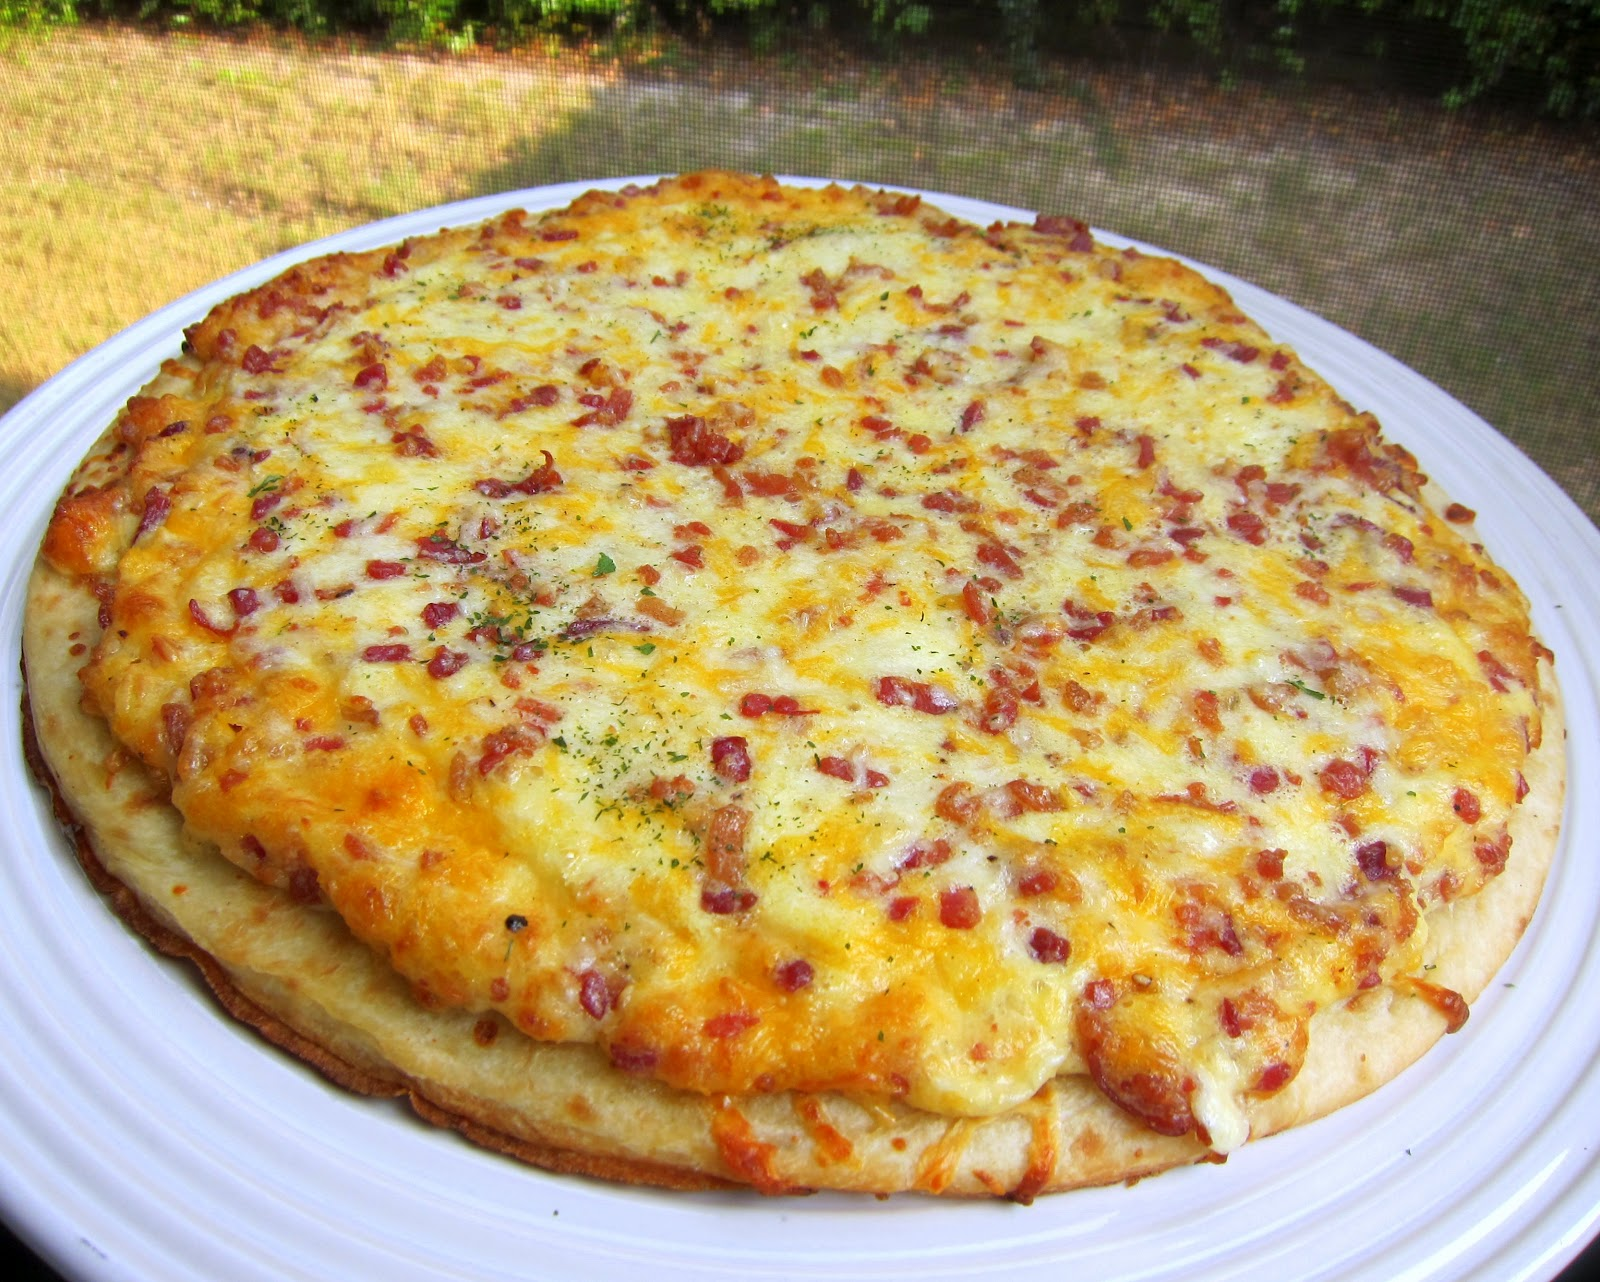 Chef Mickey's Breakfast Pizza - Plain Chicken